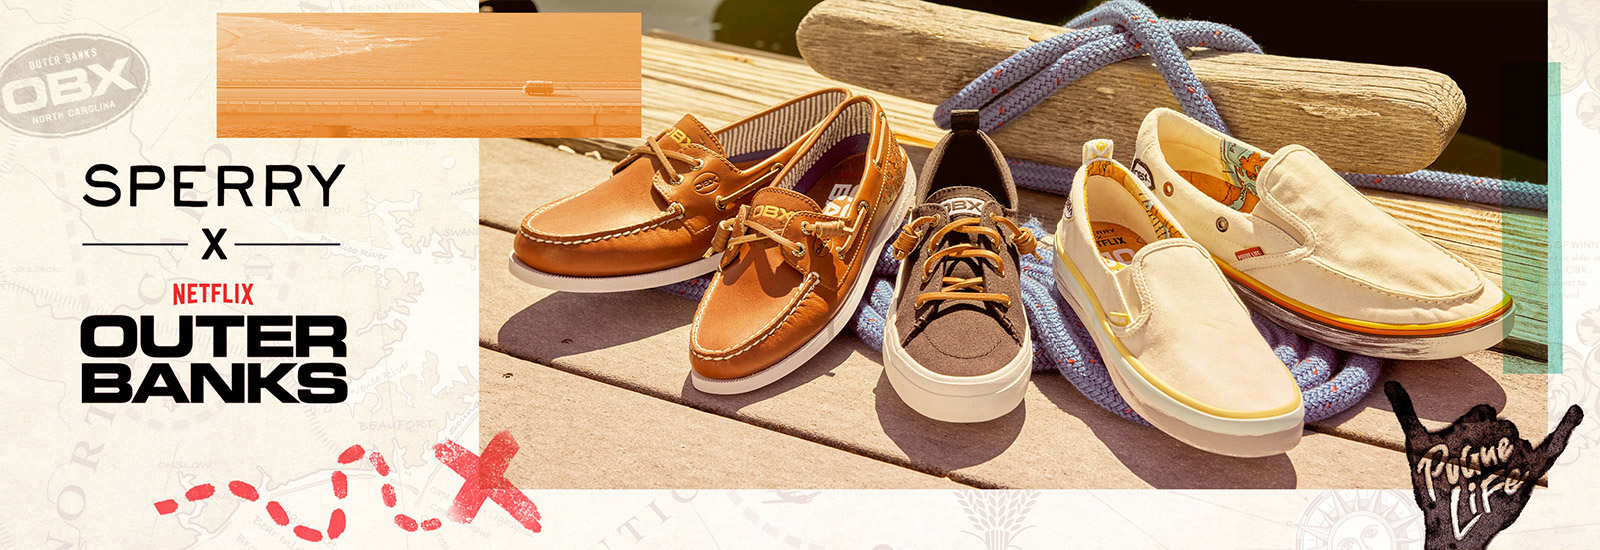 Sperry x Outer Banks Collection